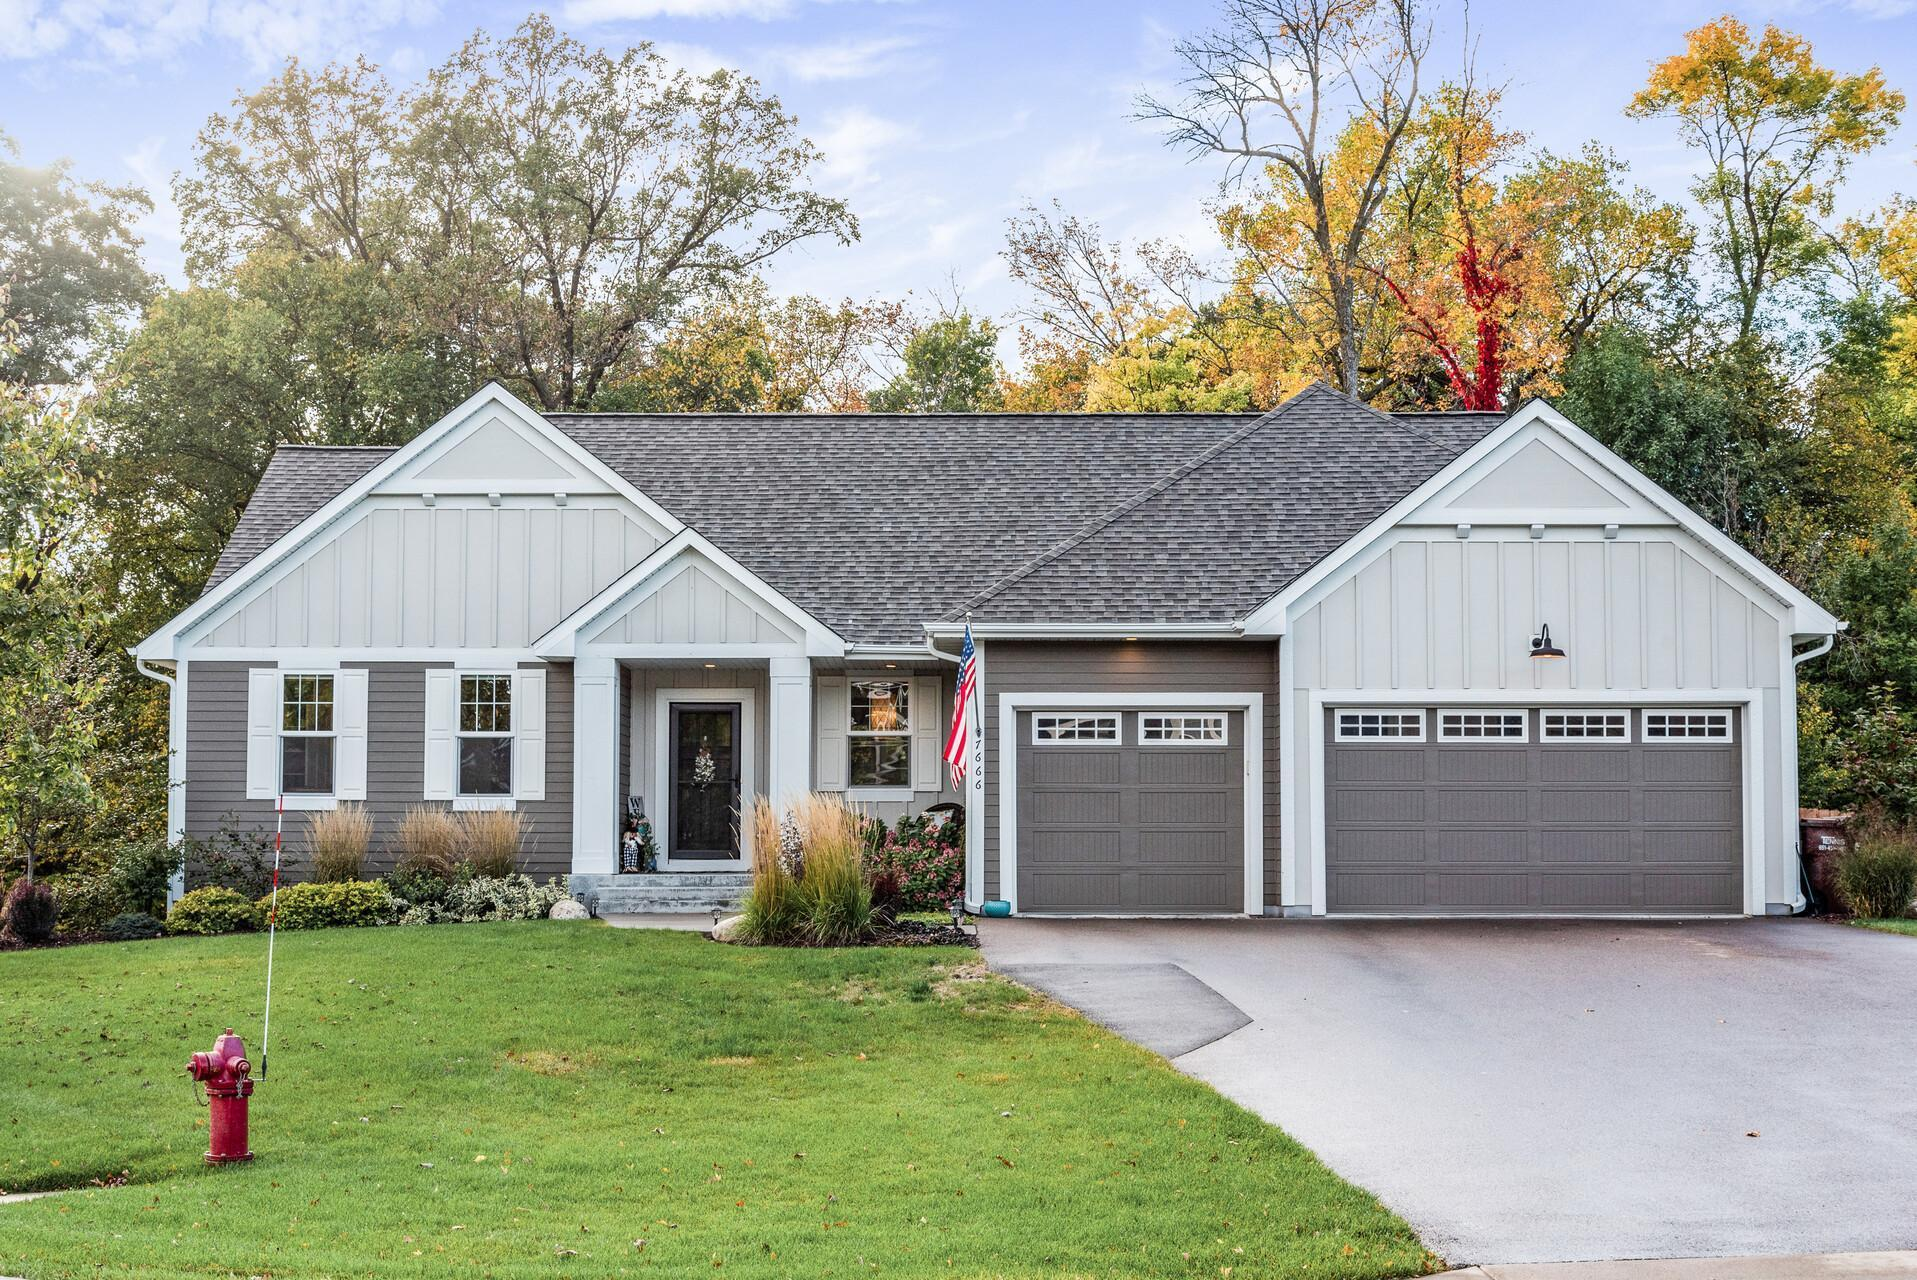 7666 Aspen Cove S Property Photo - Cottage Grove, MN real estate listing